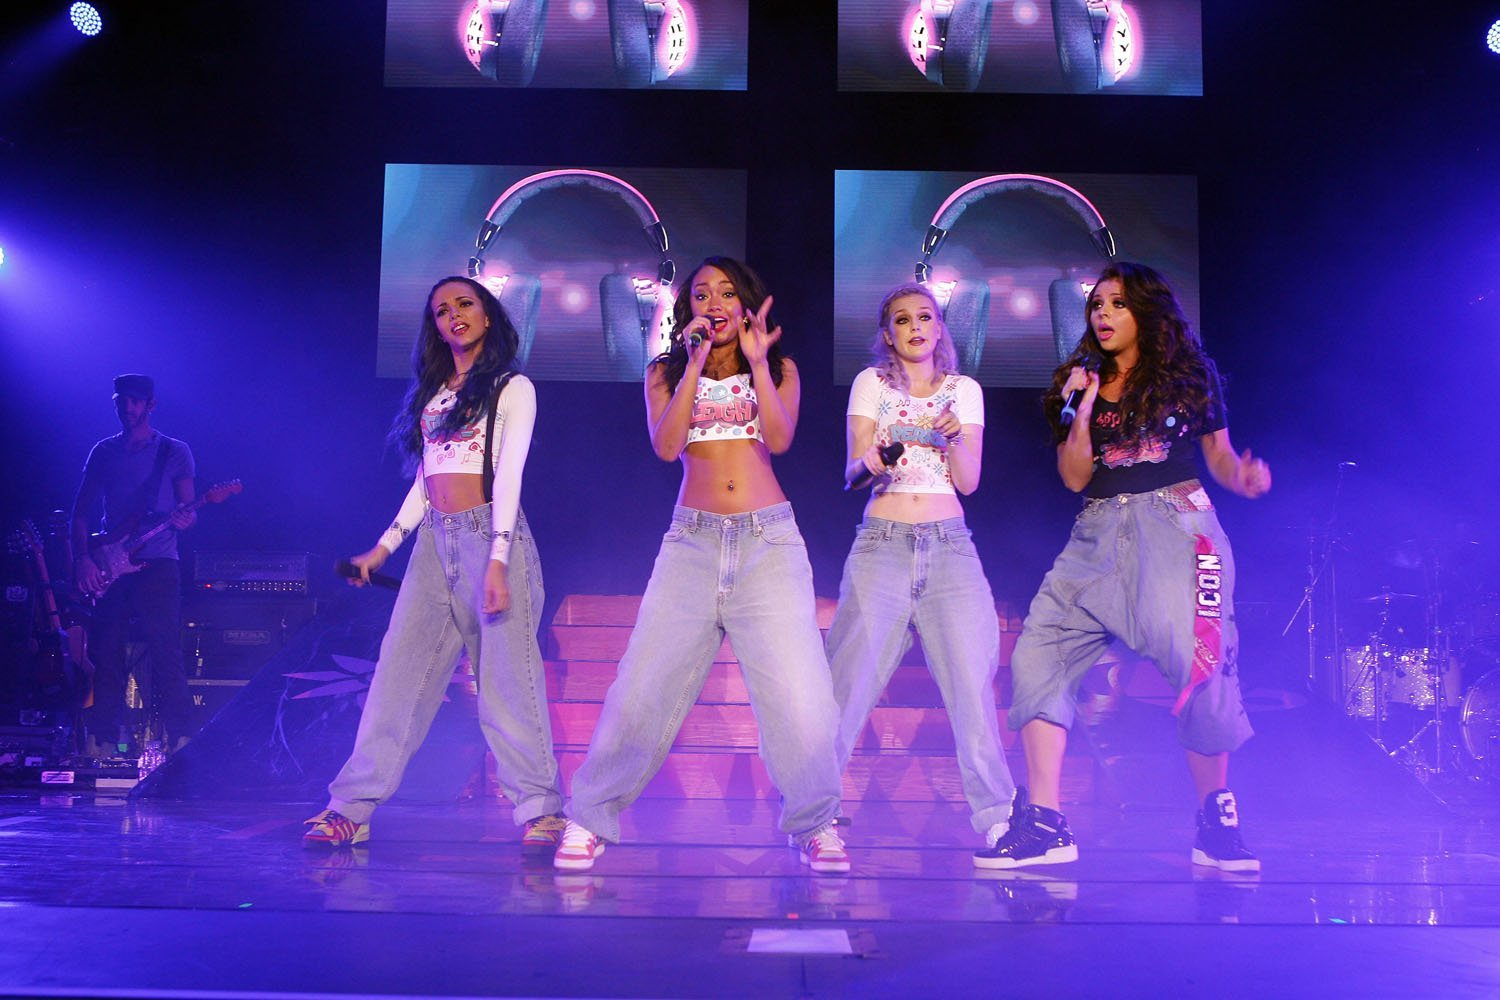 Little Mix @ Plymouth Pavilions 11th February 2013 - www.leapimages.co.uk